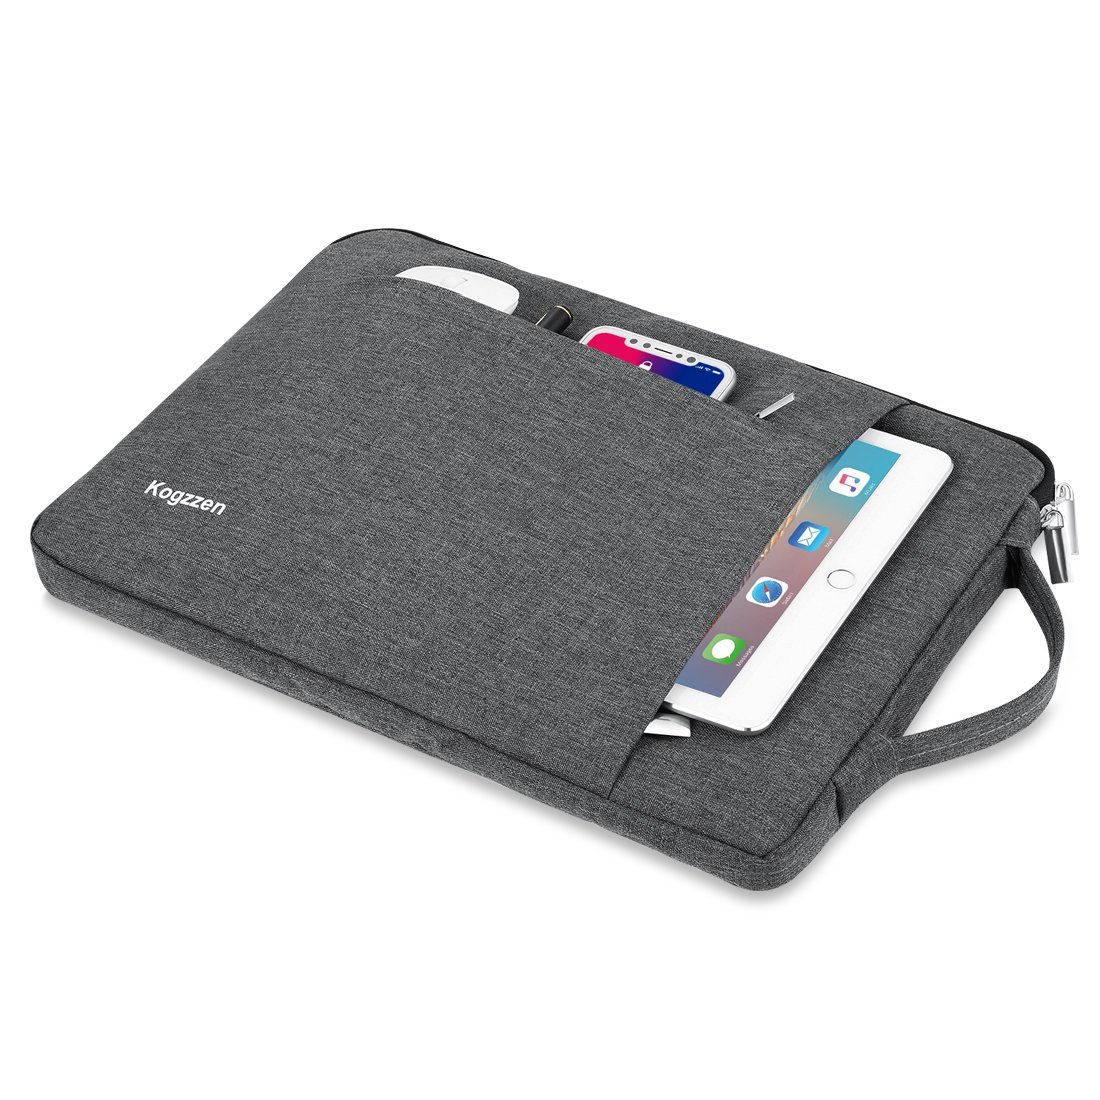 Kogzzen 13-13.5 Inch Laptop Sleeve Shockproof Lightweight Case Carrying Bag Compatible with MacBook Pro 13 inch/MacBook Air 13.3/ Dell XPS 13/ Surface Book 2 13.5/ Surface Laptop/iPad Pro 12.9 - Gray by Kogzzen (Image #3)